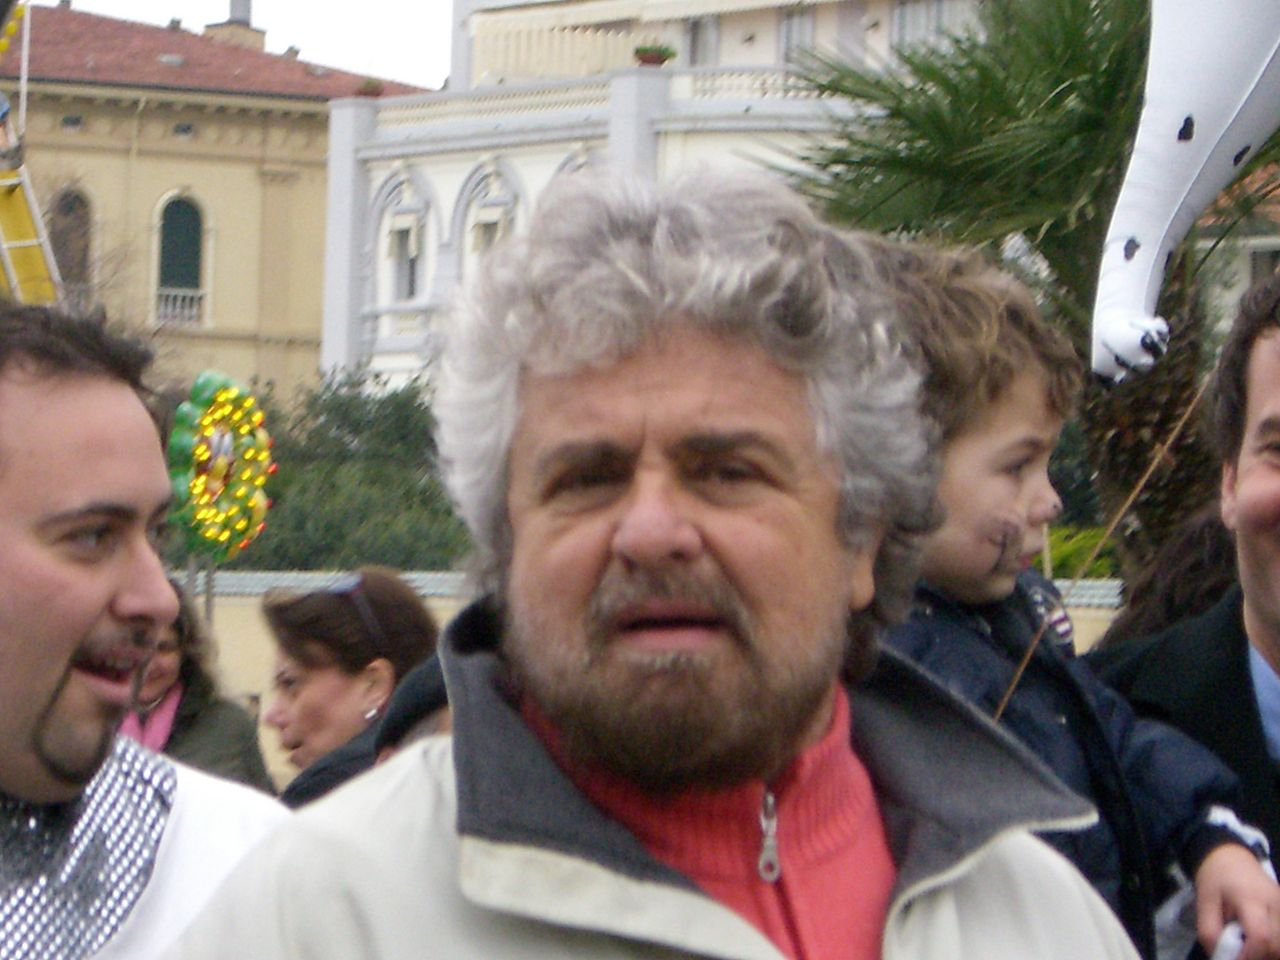 Beppe Grillo, the comedian who's blocking Italian politics. Photo on Flickr by Jagen, via wikimedia.org